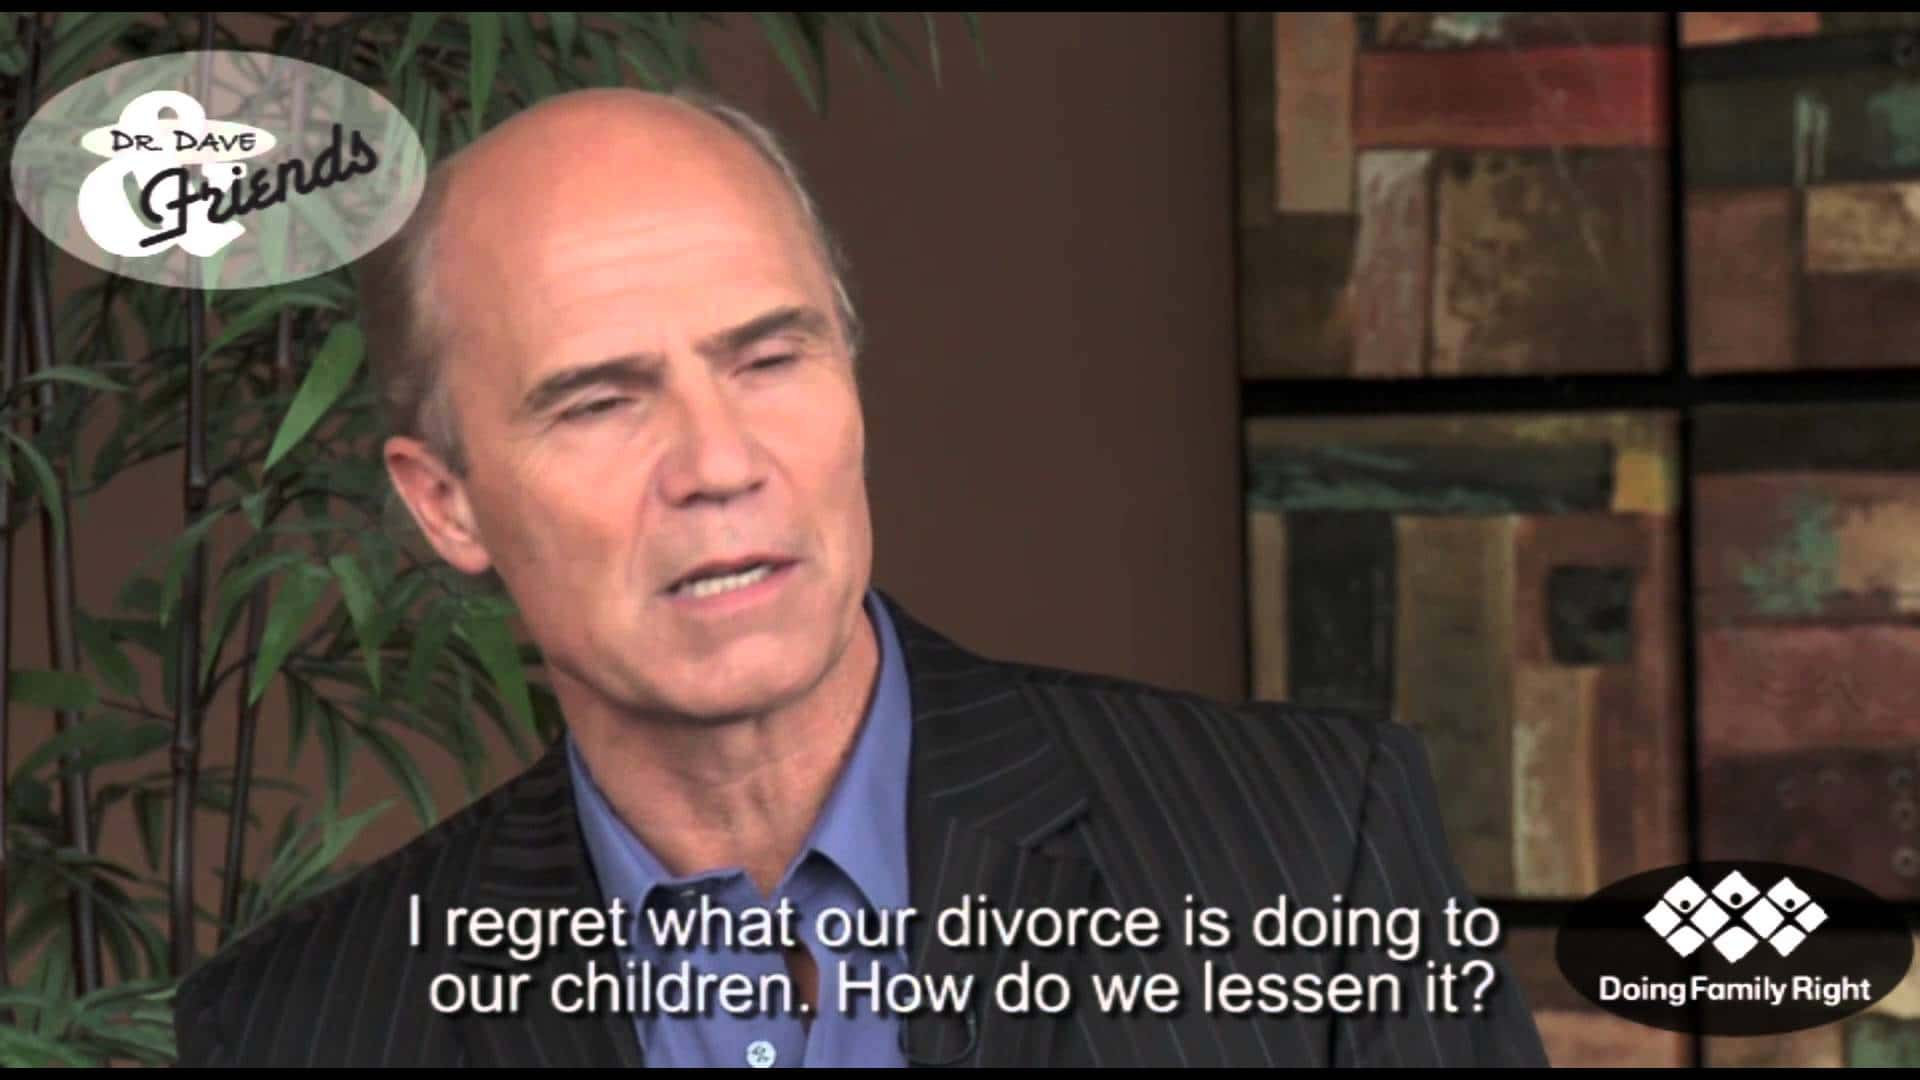 Parenting: I regret what our divorce is doing to our